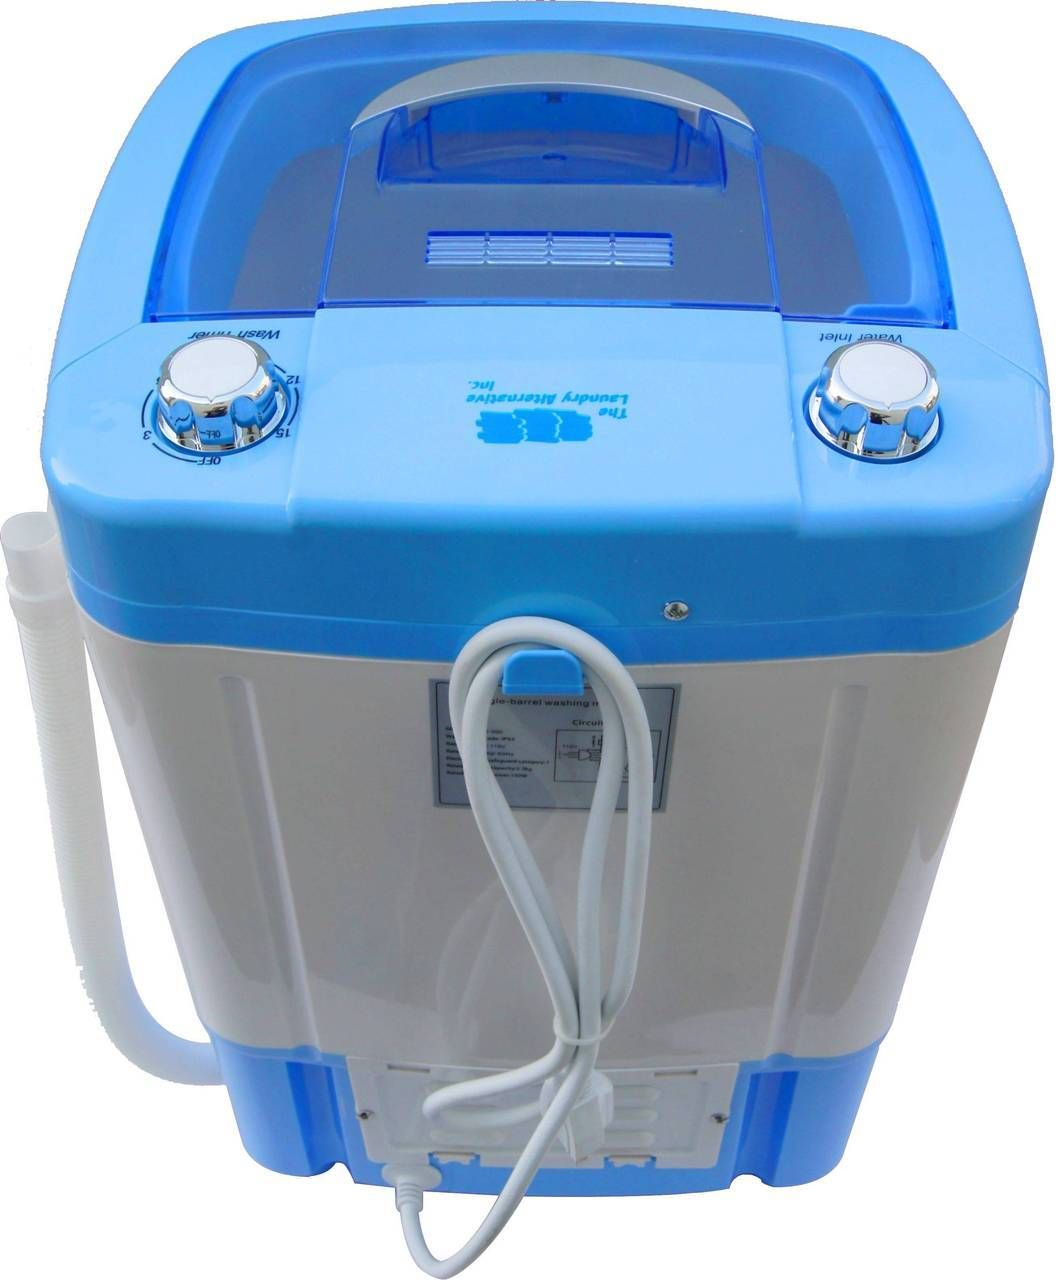 Nina Soft Spin Dryer Mini Washing Machine Laundry Alternative